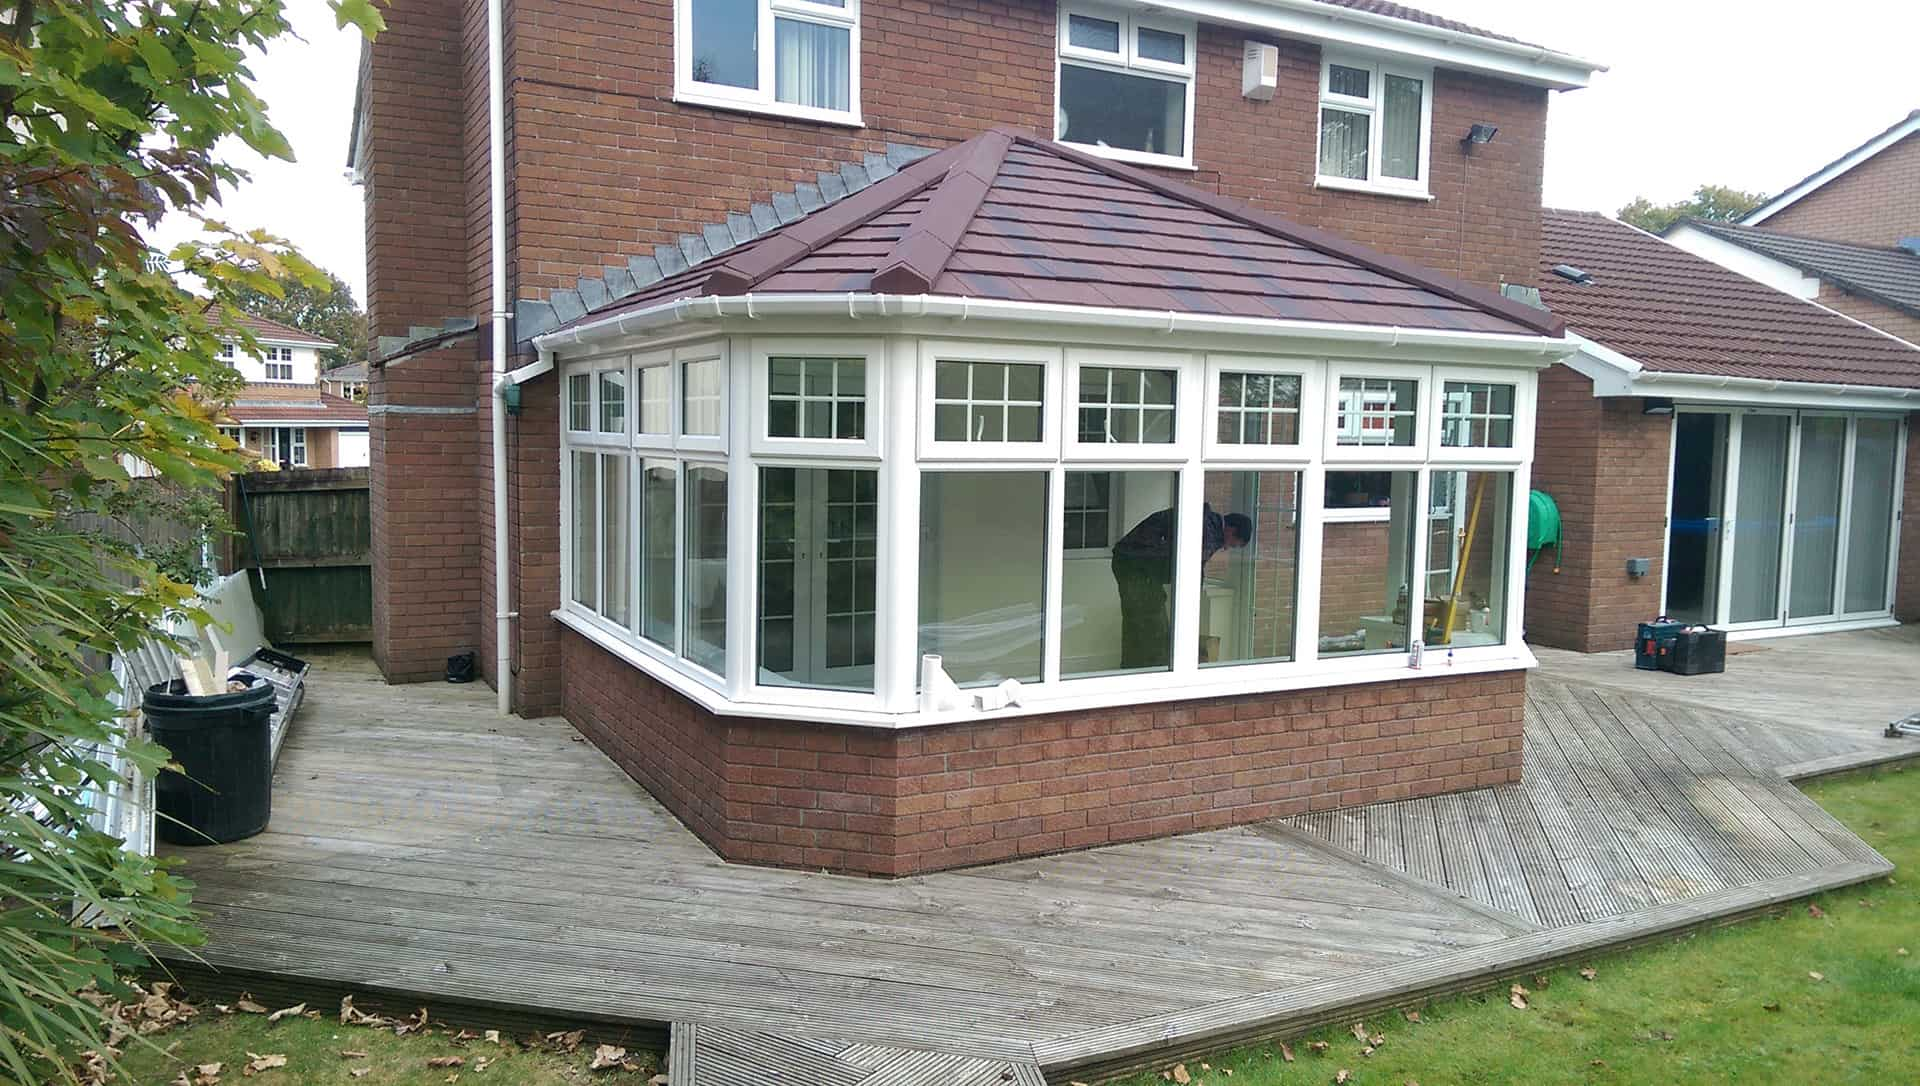 solid conservatory roof with red tiles